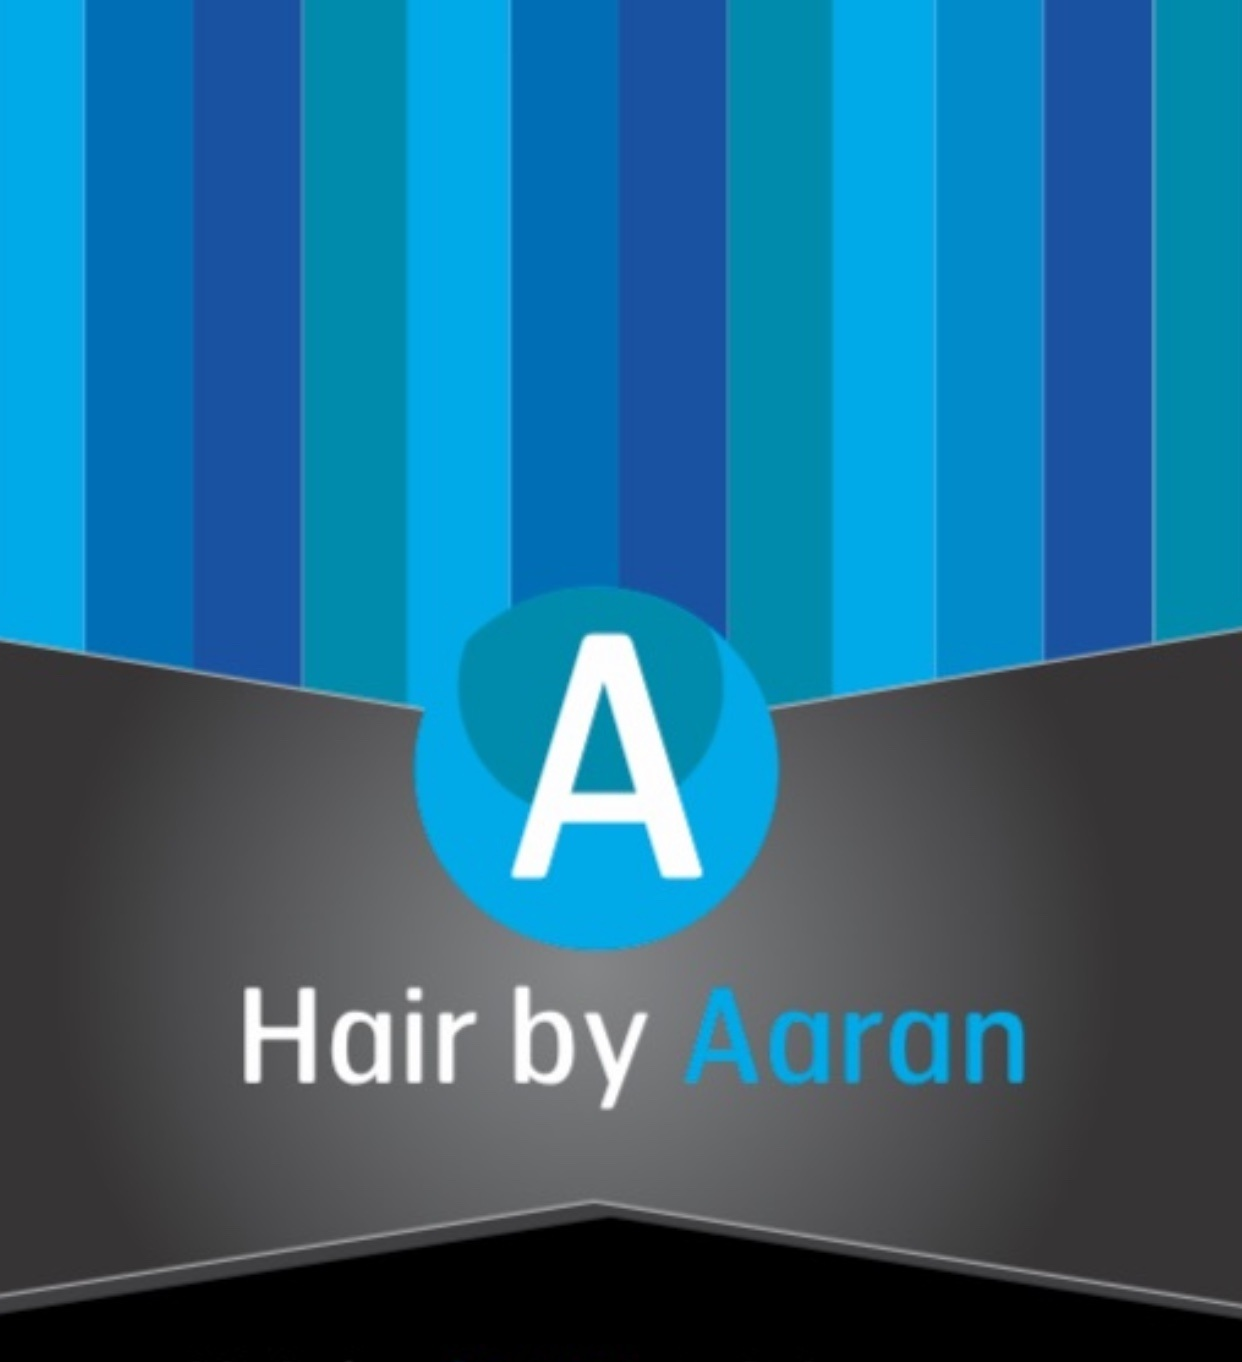 HAIR BY AARAN @ ARISTACUT